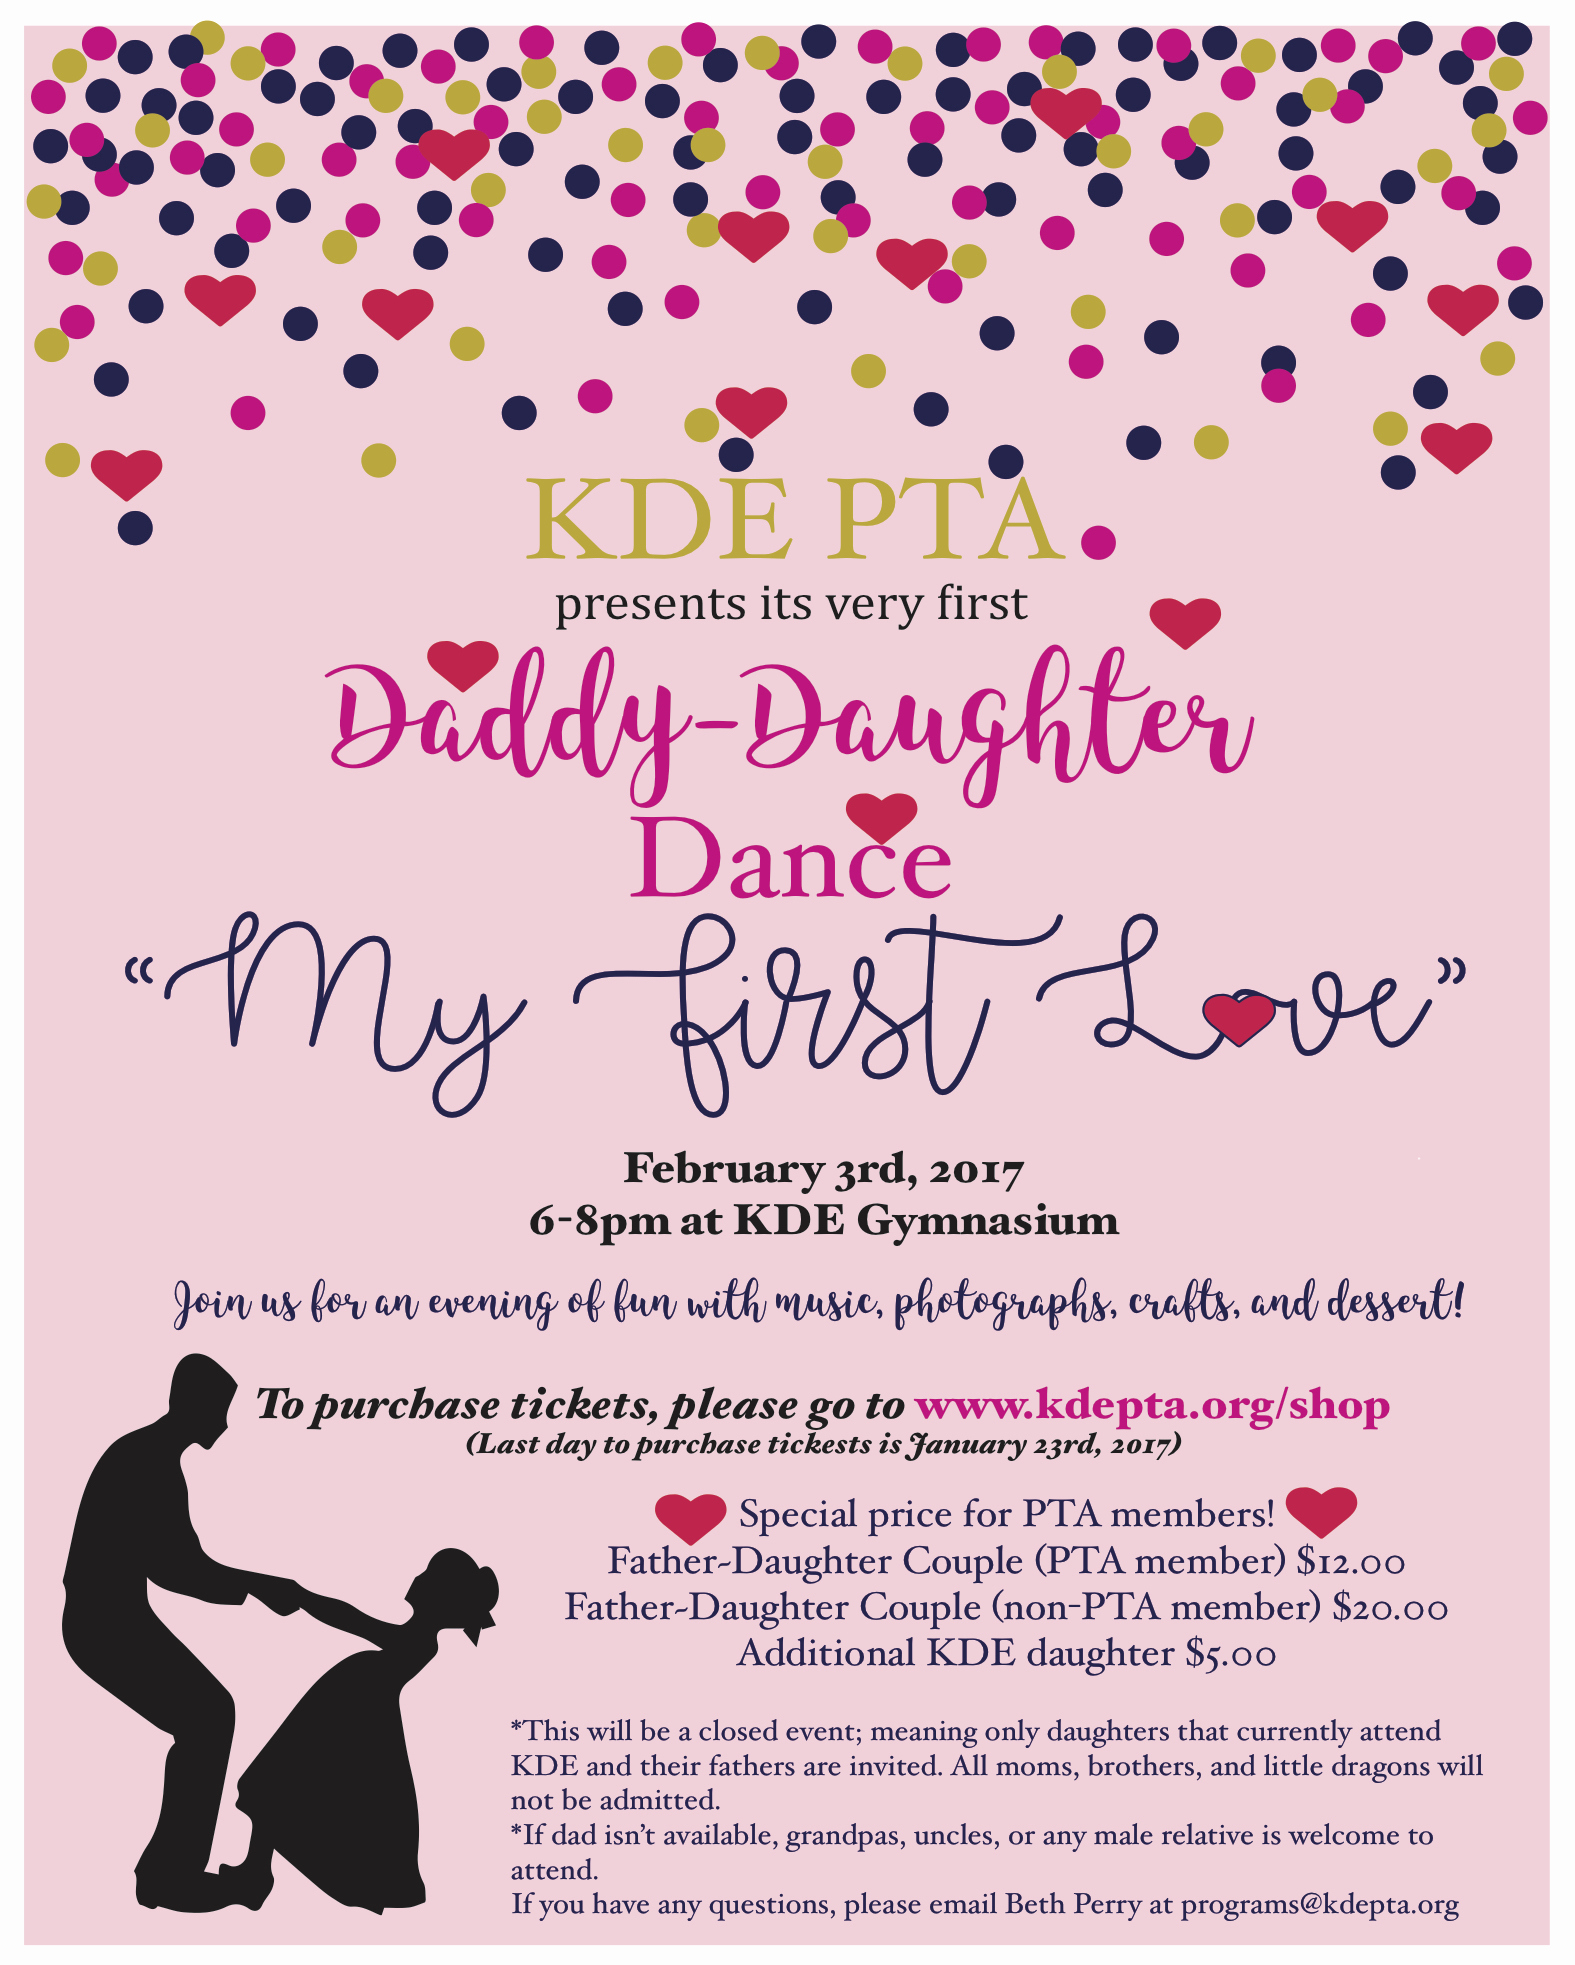 Father Daughter Dance Invitation Unique Father Daughter Dance Tickets now Sale Kde Pta